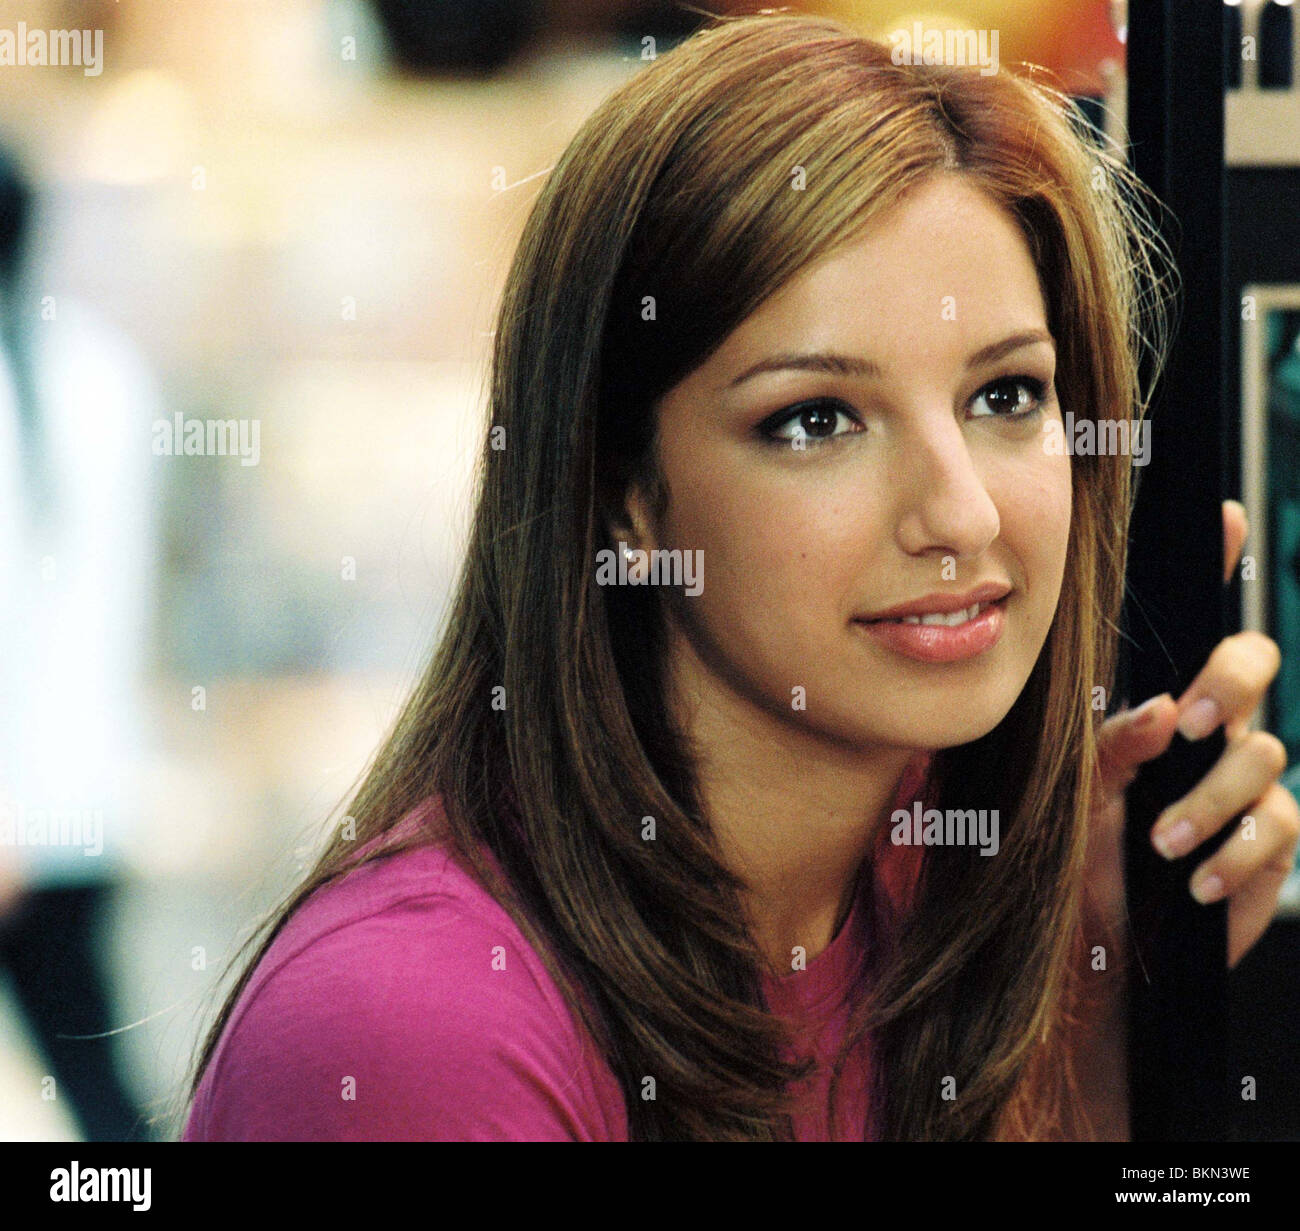 STICK IT (2006) VANESSA LENGIES SKIT 001-12 - Stock Image